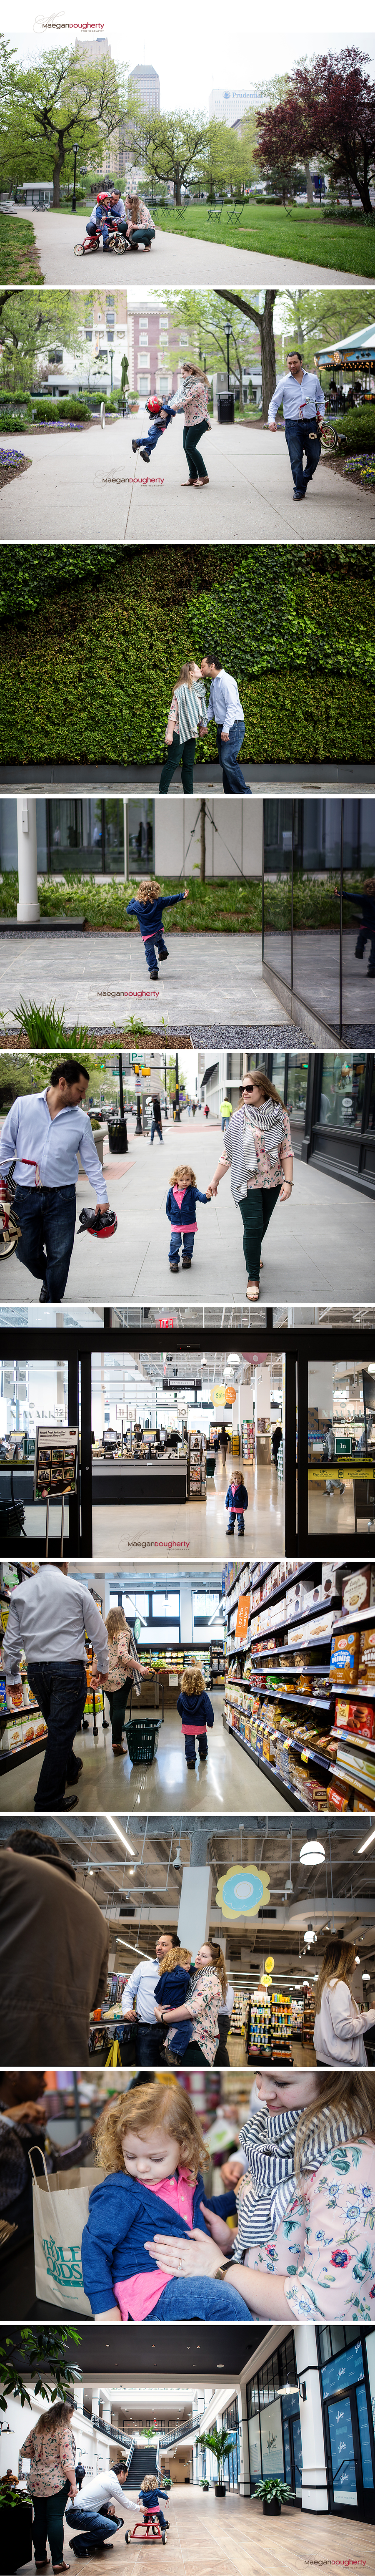 family with two year old boy goes for walk around their urban neighborhood in new jersey with photograph